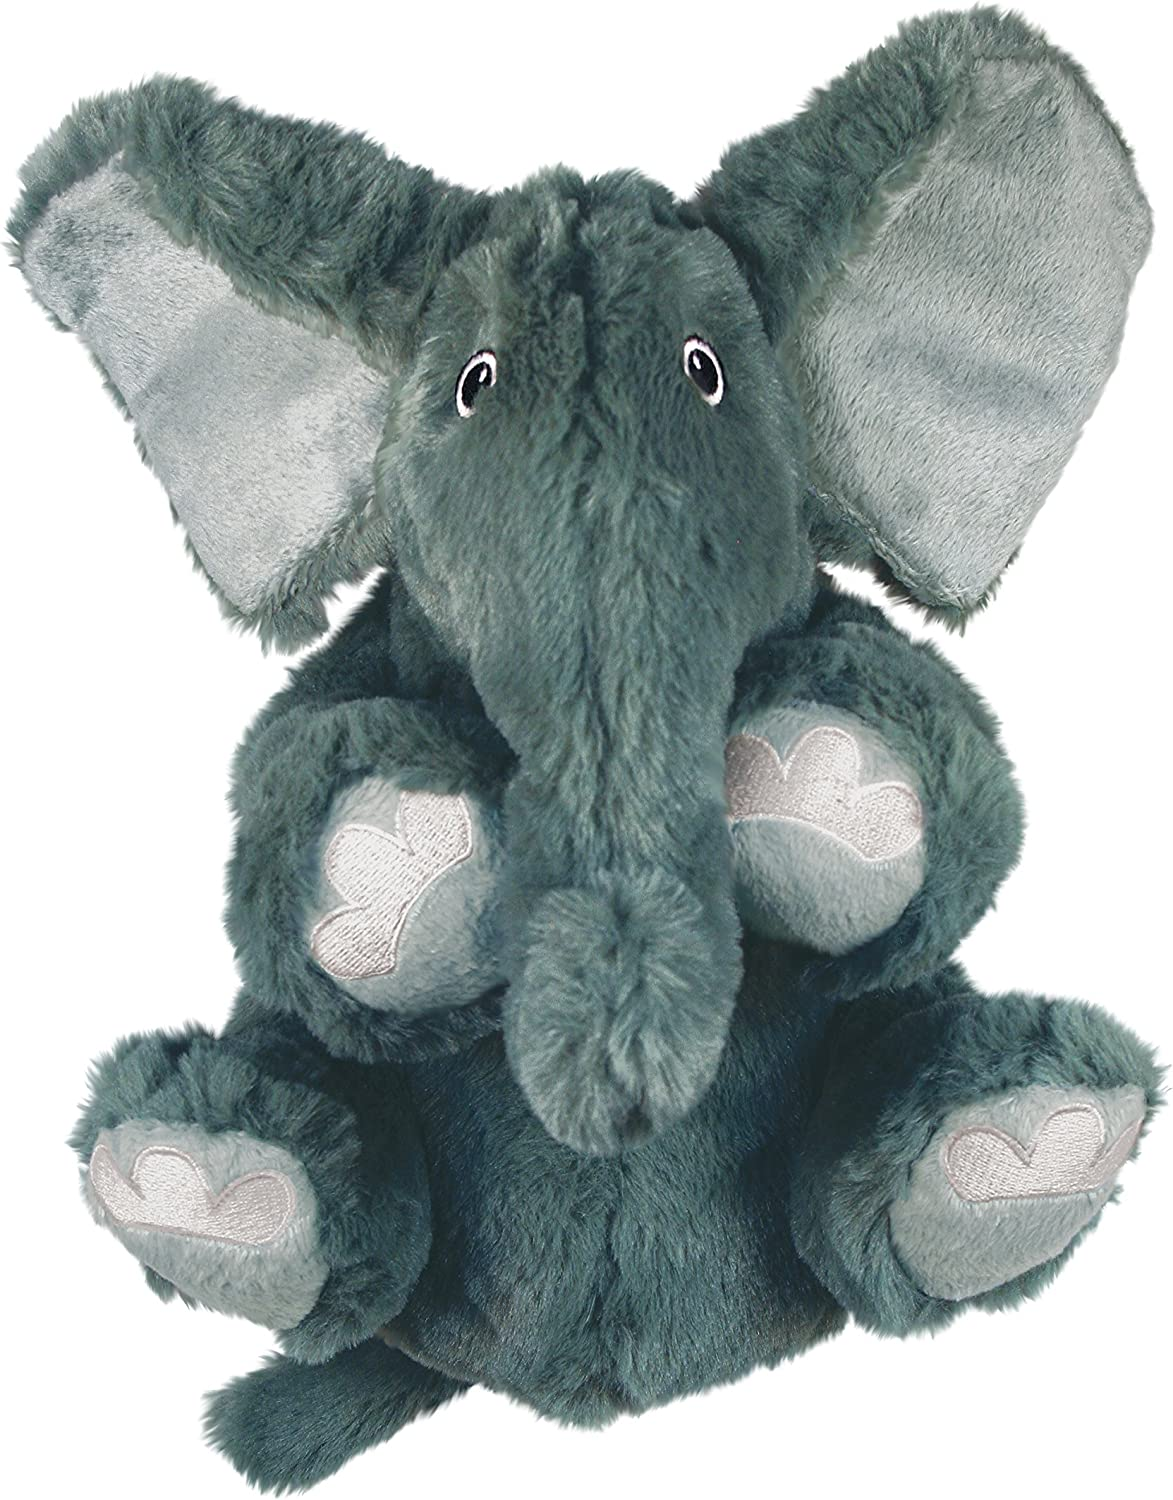 KONG - Comfort Kiddos Elephant - Fun Plush Dog Toy with Removable Squeaker - For Large Dogs